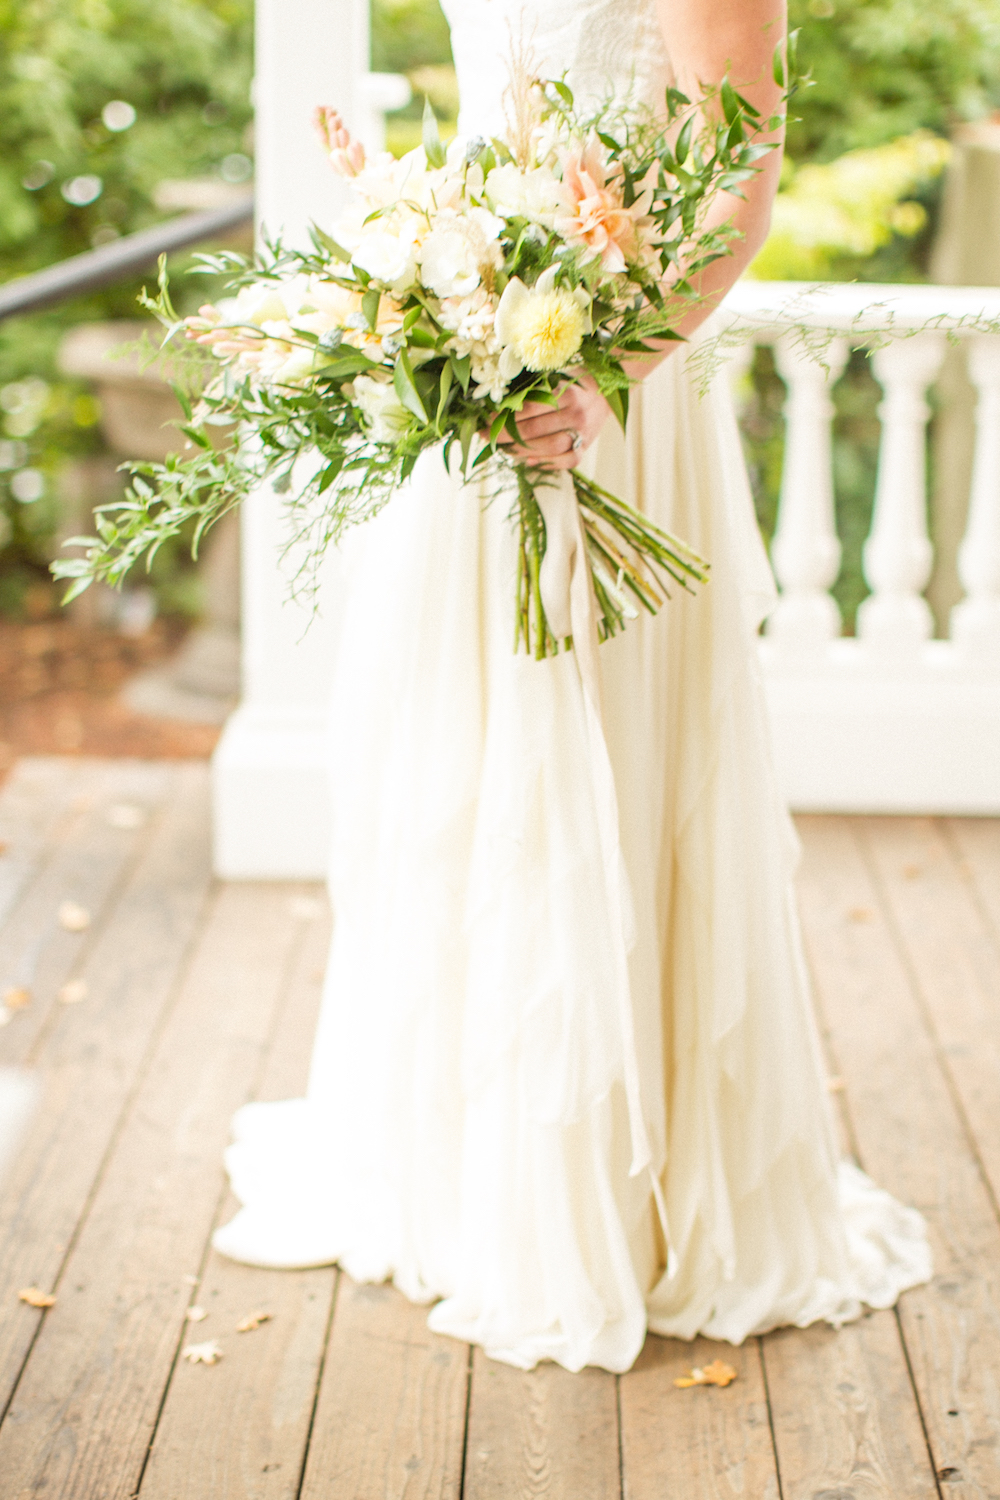 Cozy, Ethereal Wedding Inspiration at The General's Daughter